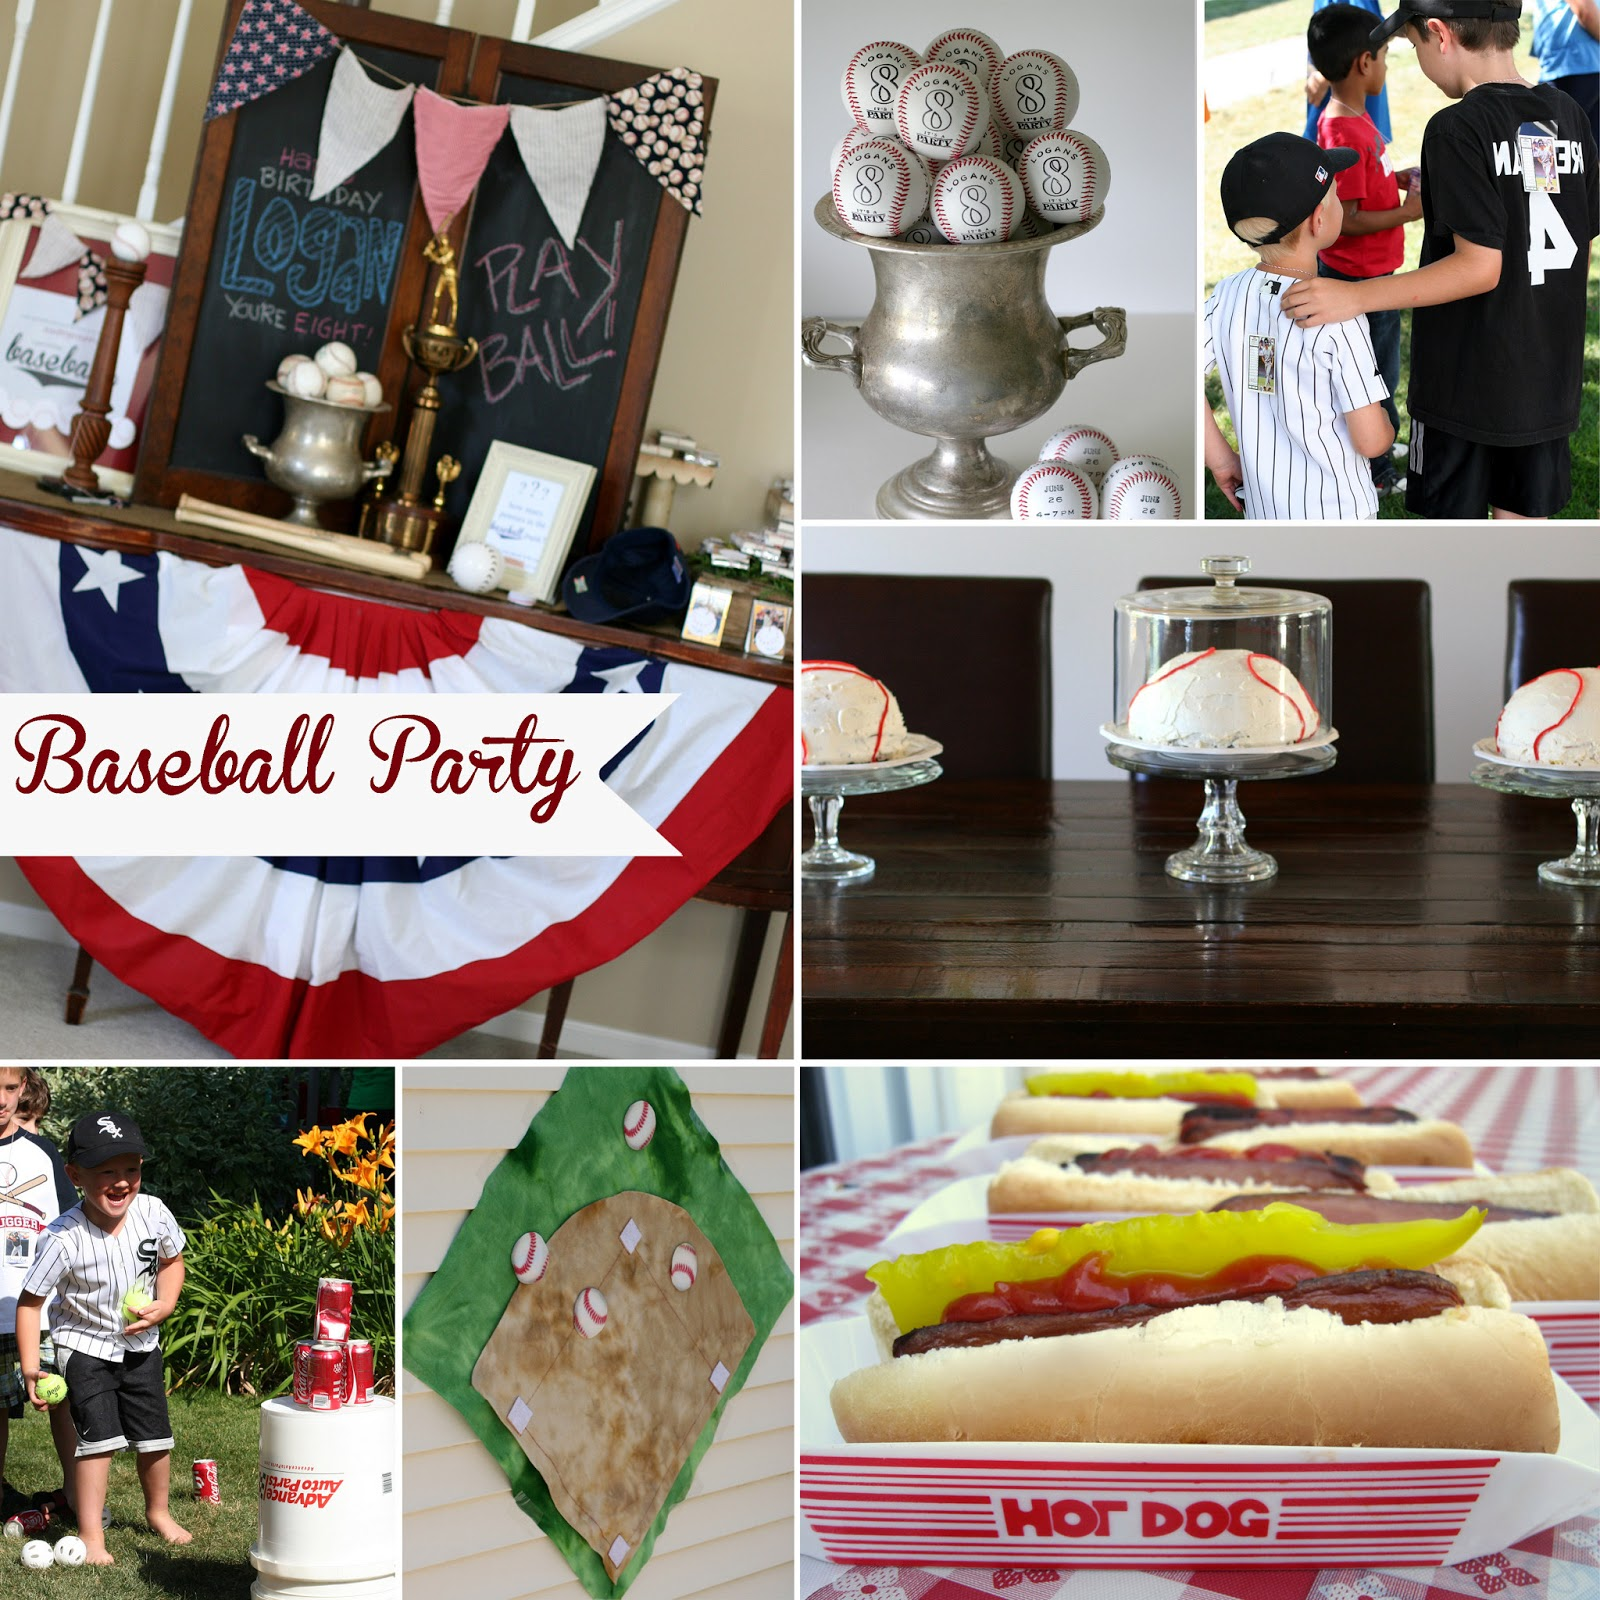 Notable nest baseball party invitations for 15 years party decoration